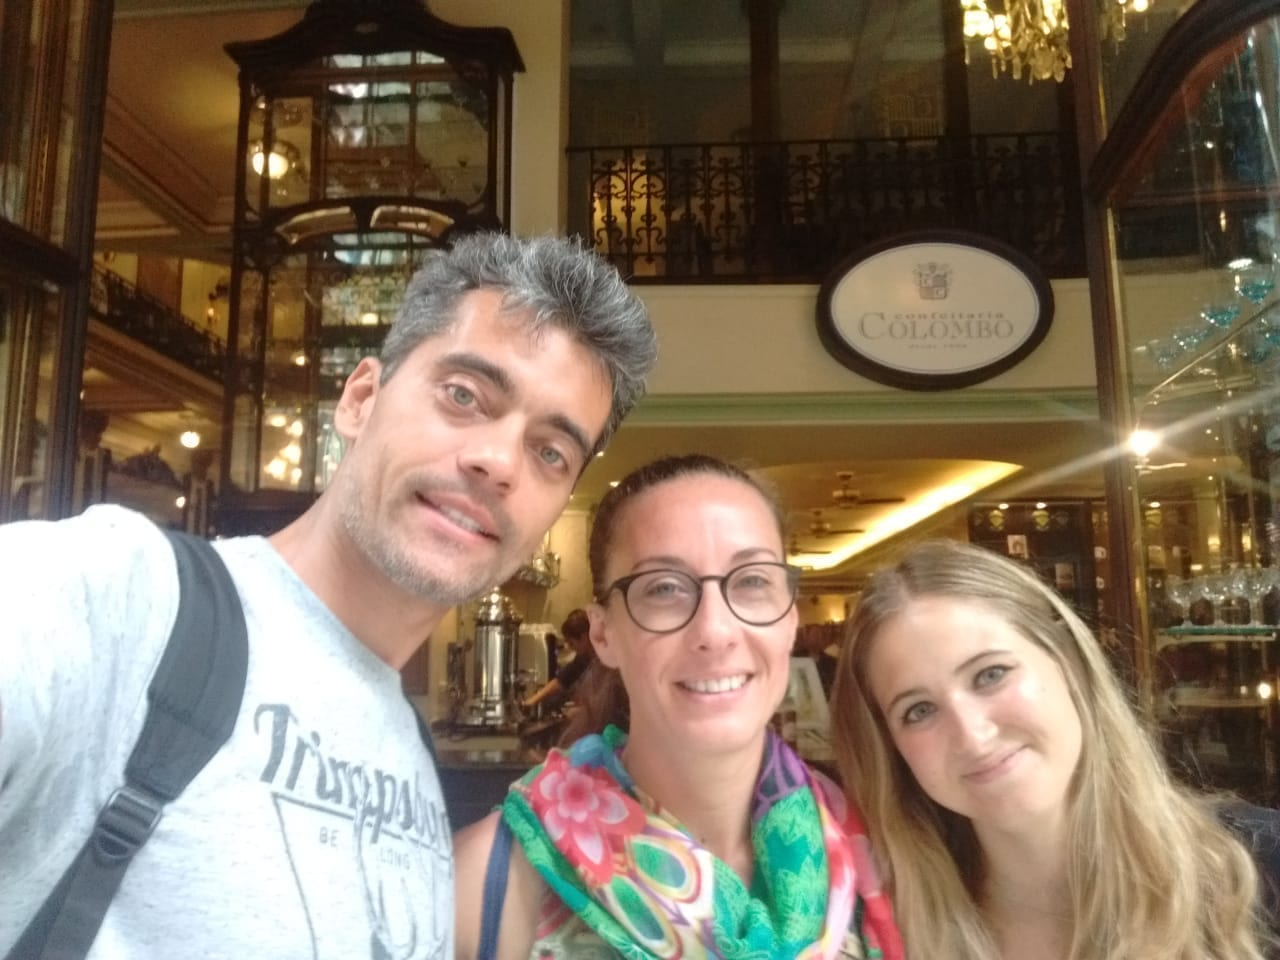 Portuguese students at Confeitaria Colombo Centro